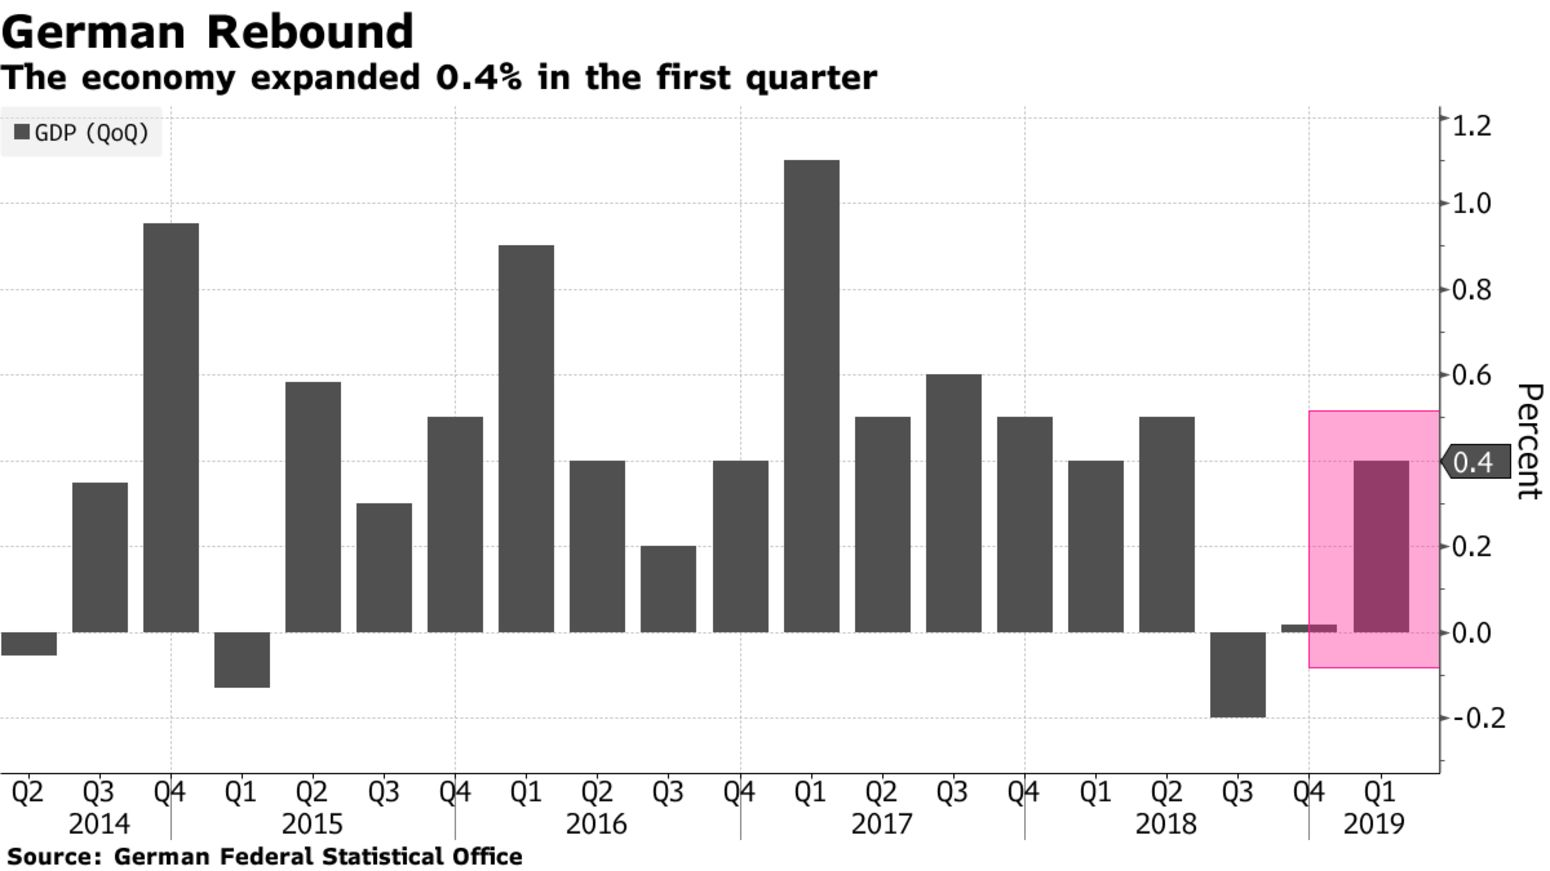 The economy expanded 0.4% in the first quarter